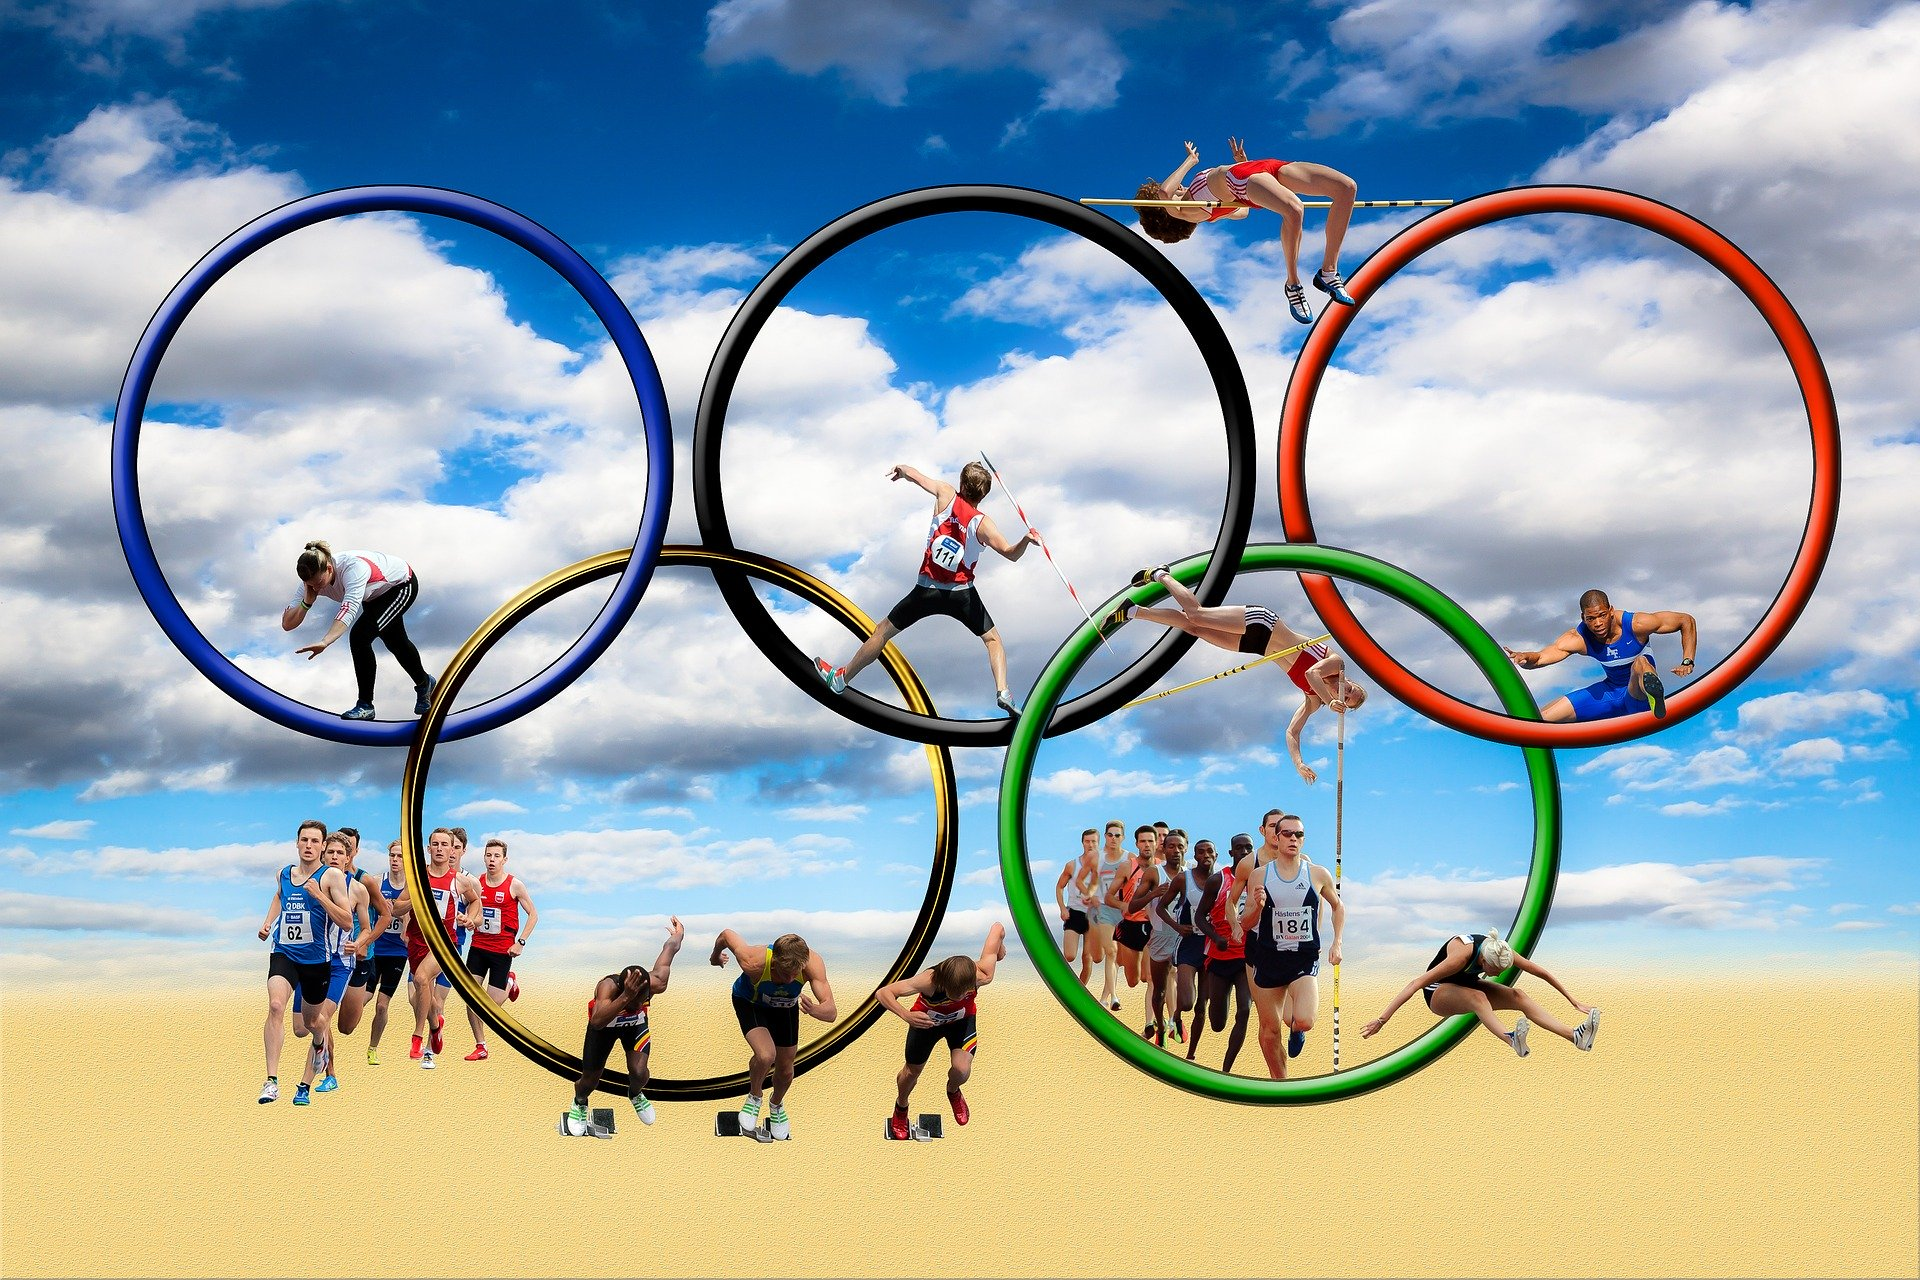 Above: The focus will be on the Olympics if they do go ahead this summer.